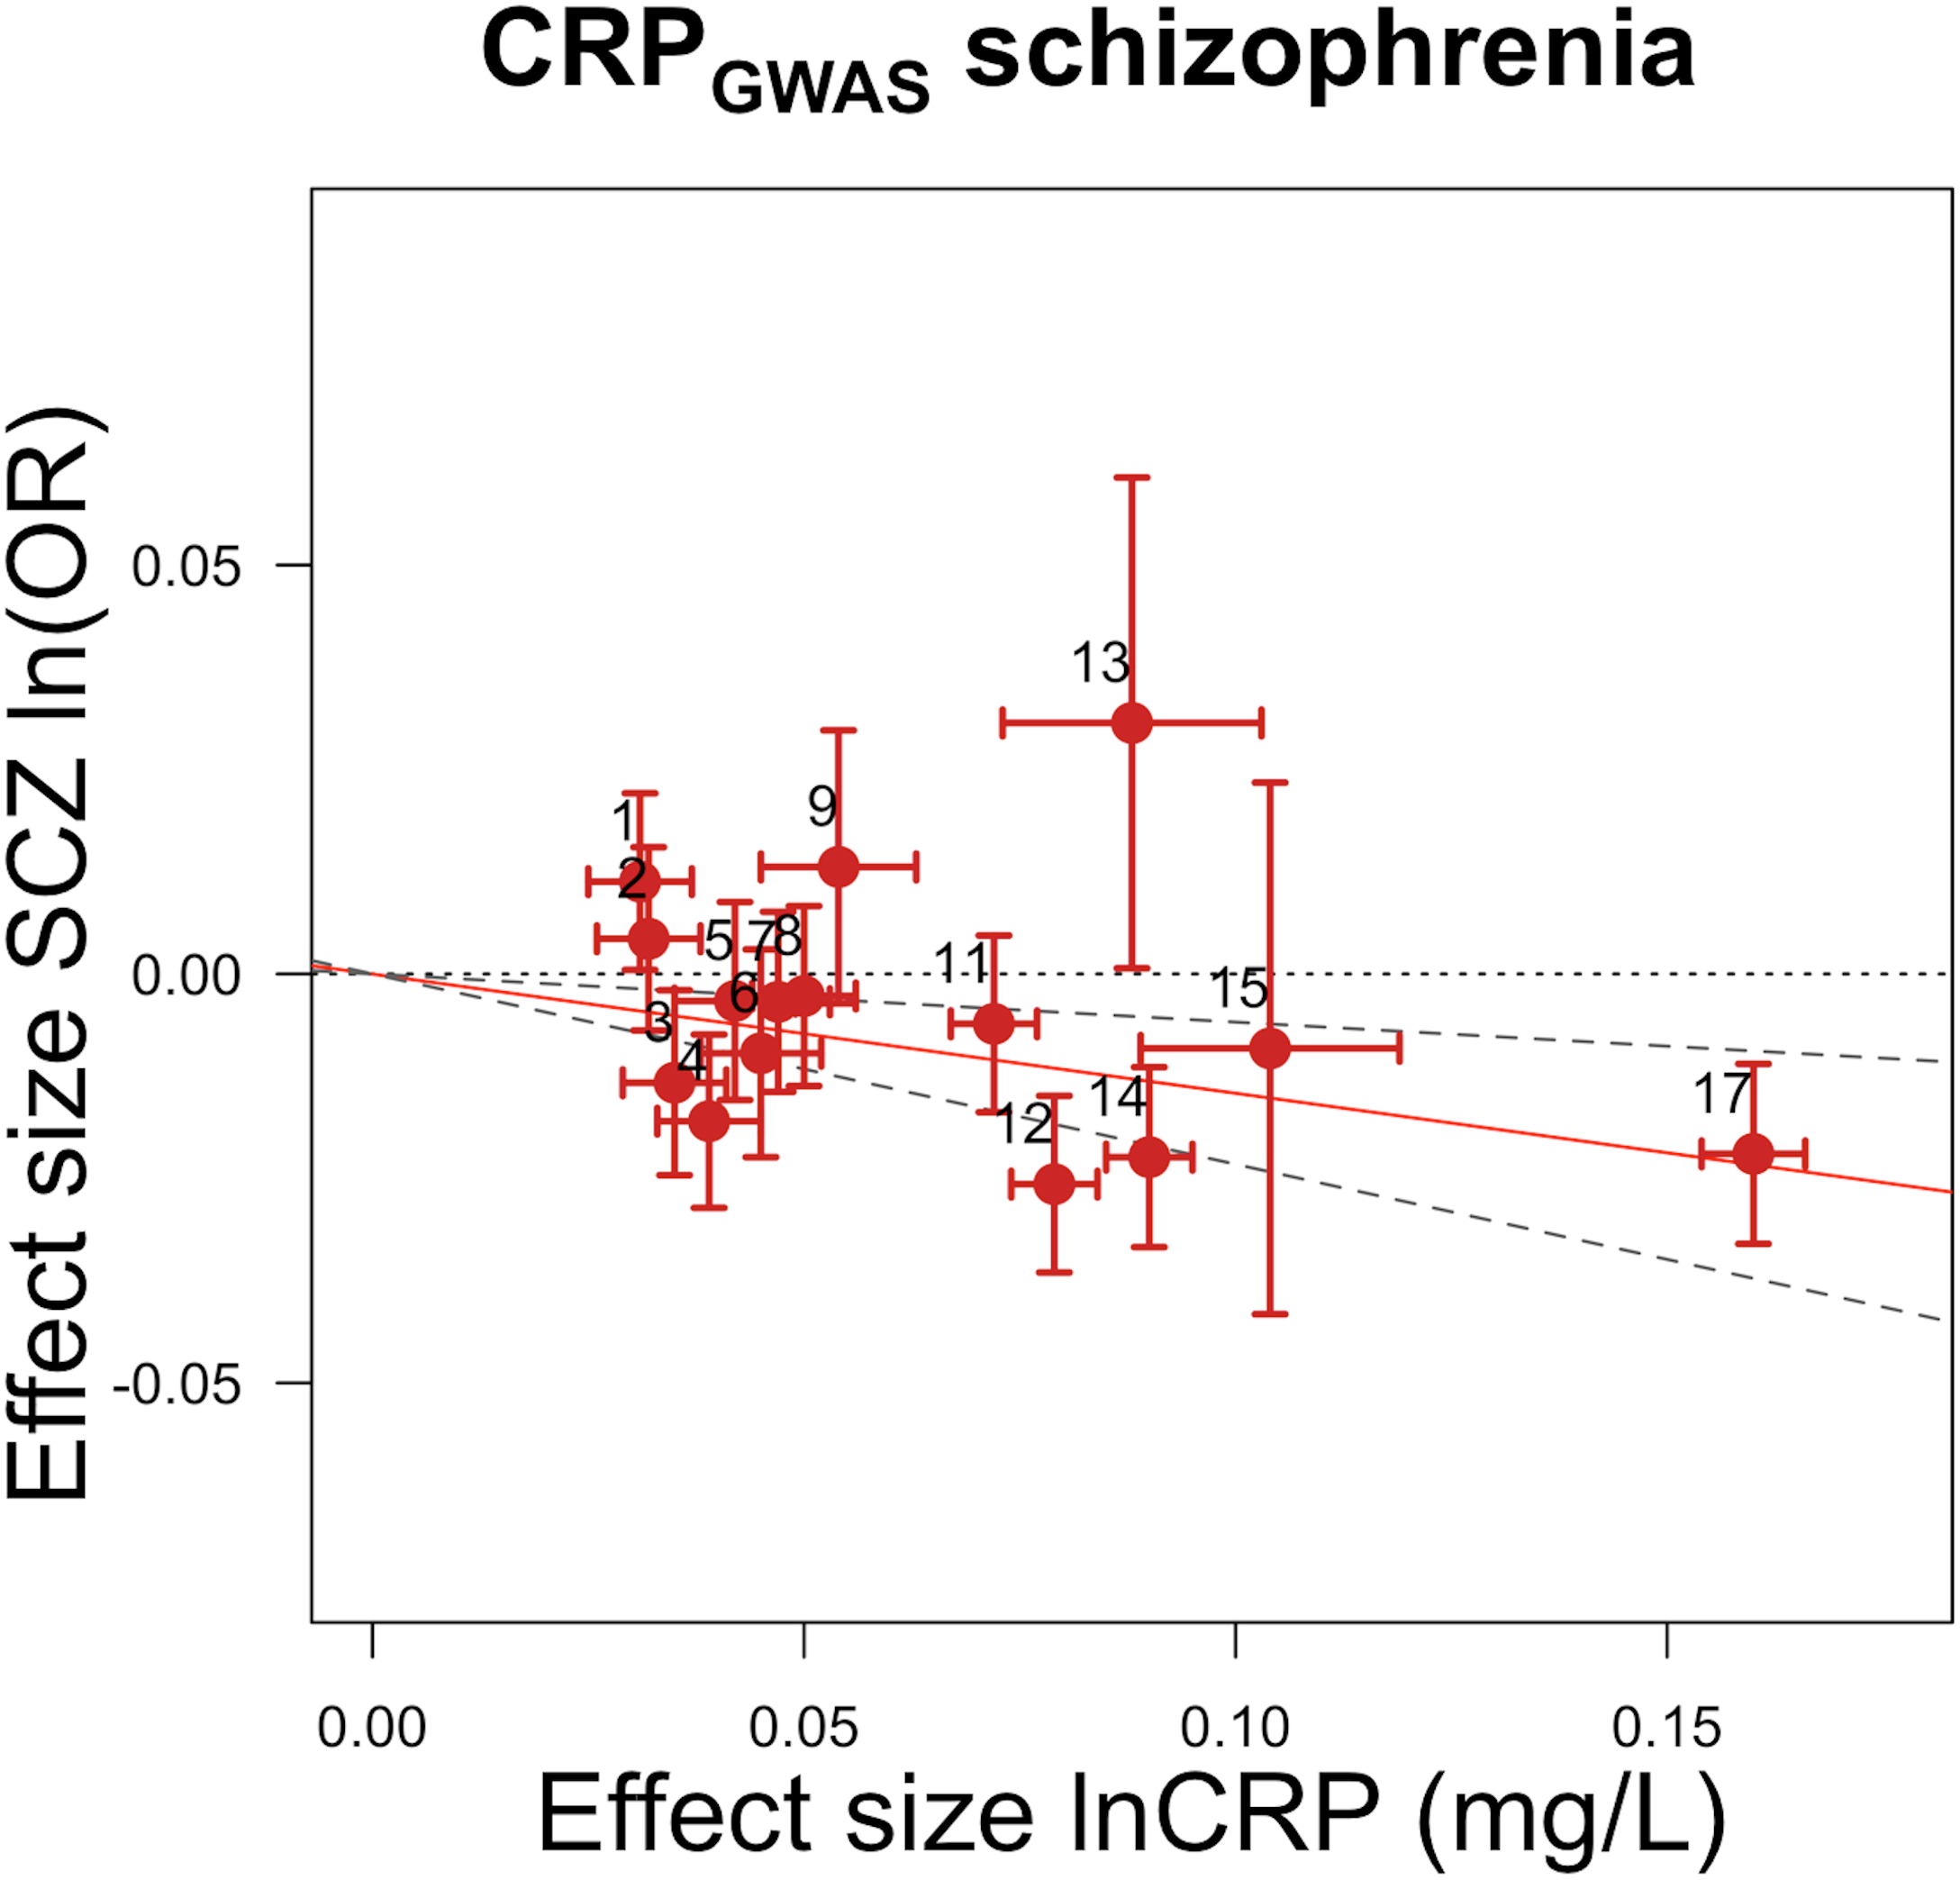 Genetic risk score GRS<sub><i>GWAS</i></sub> for schizophrenia.